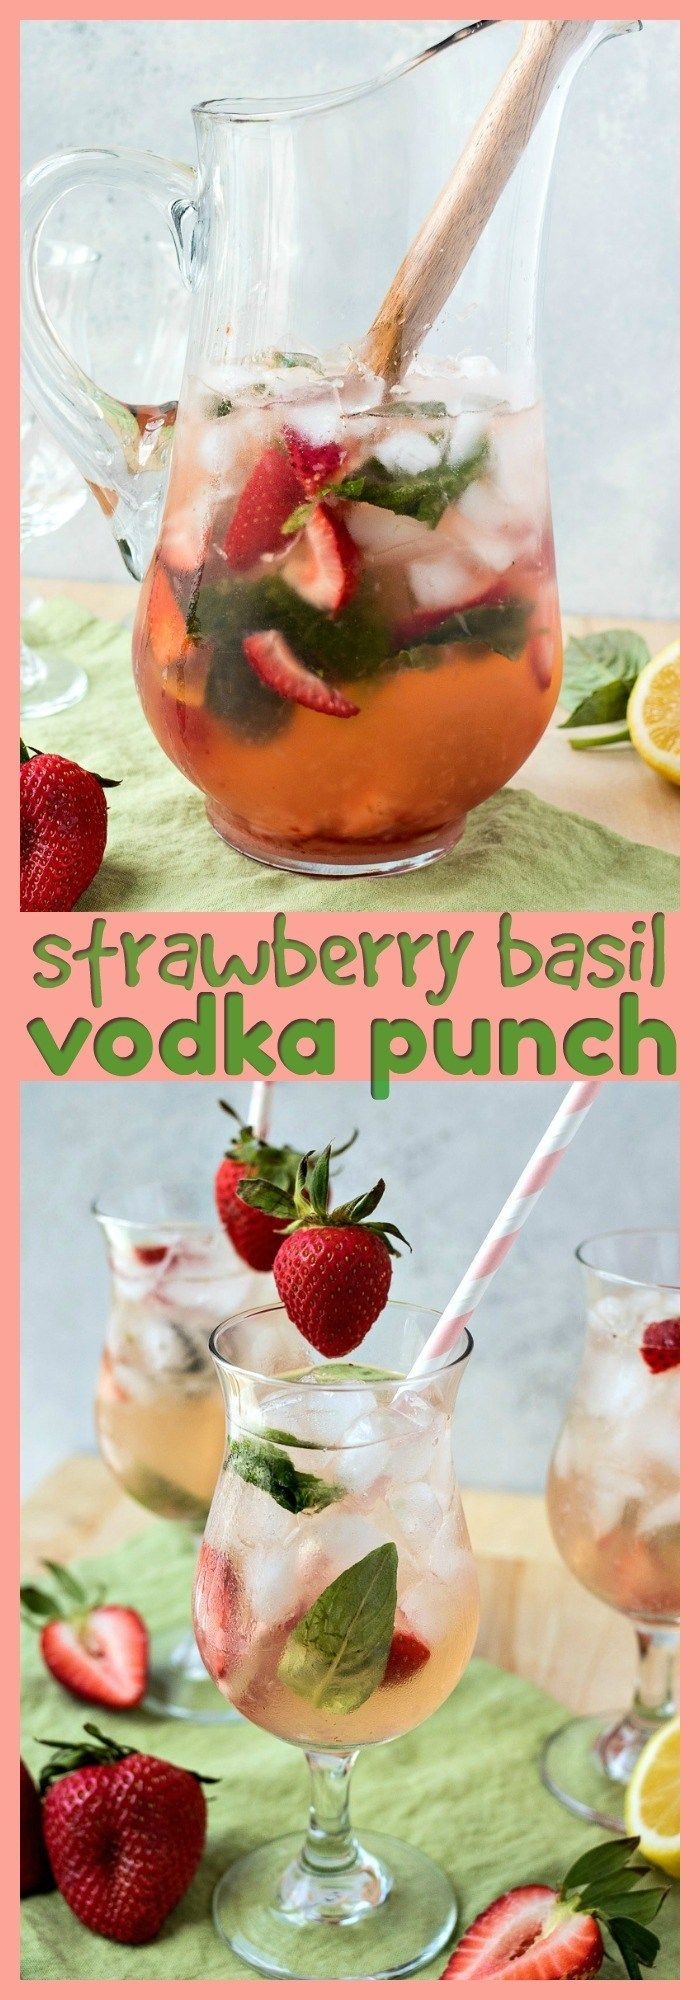 Strawberry Basil Vodka Punch - CPA: Certified Pastry Aficionado